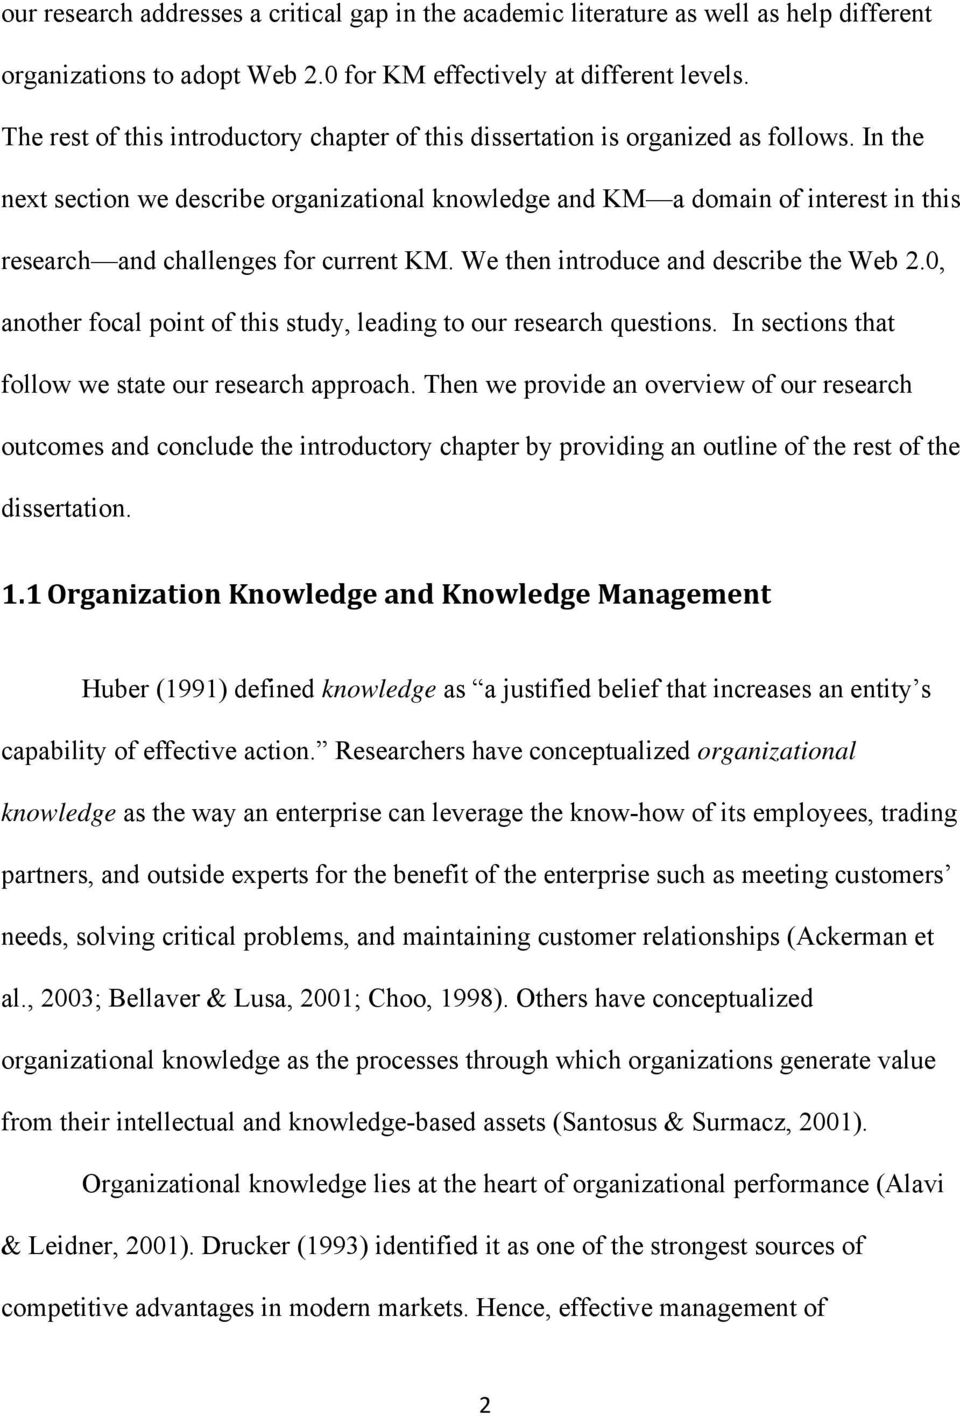 In the next section we describe organizational knowledge and KM a domain of interest in this research and challenges for current KM. We then introduce and describe the Web 2.